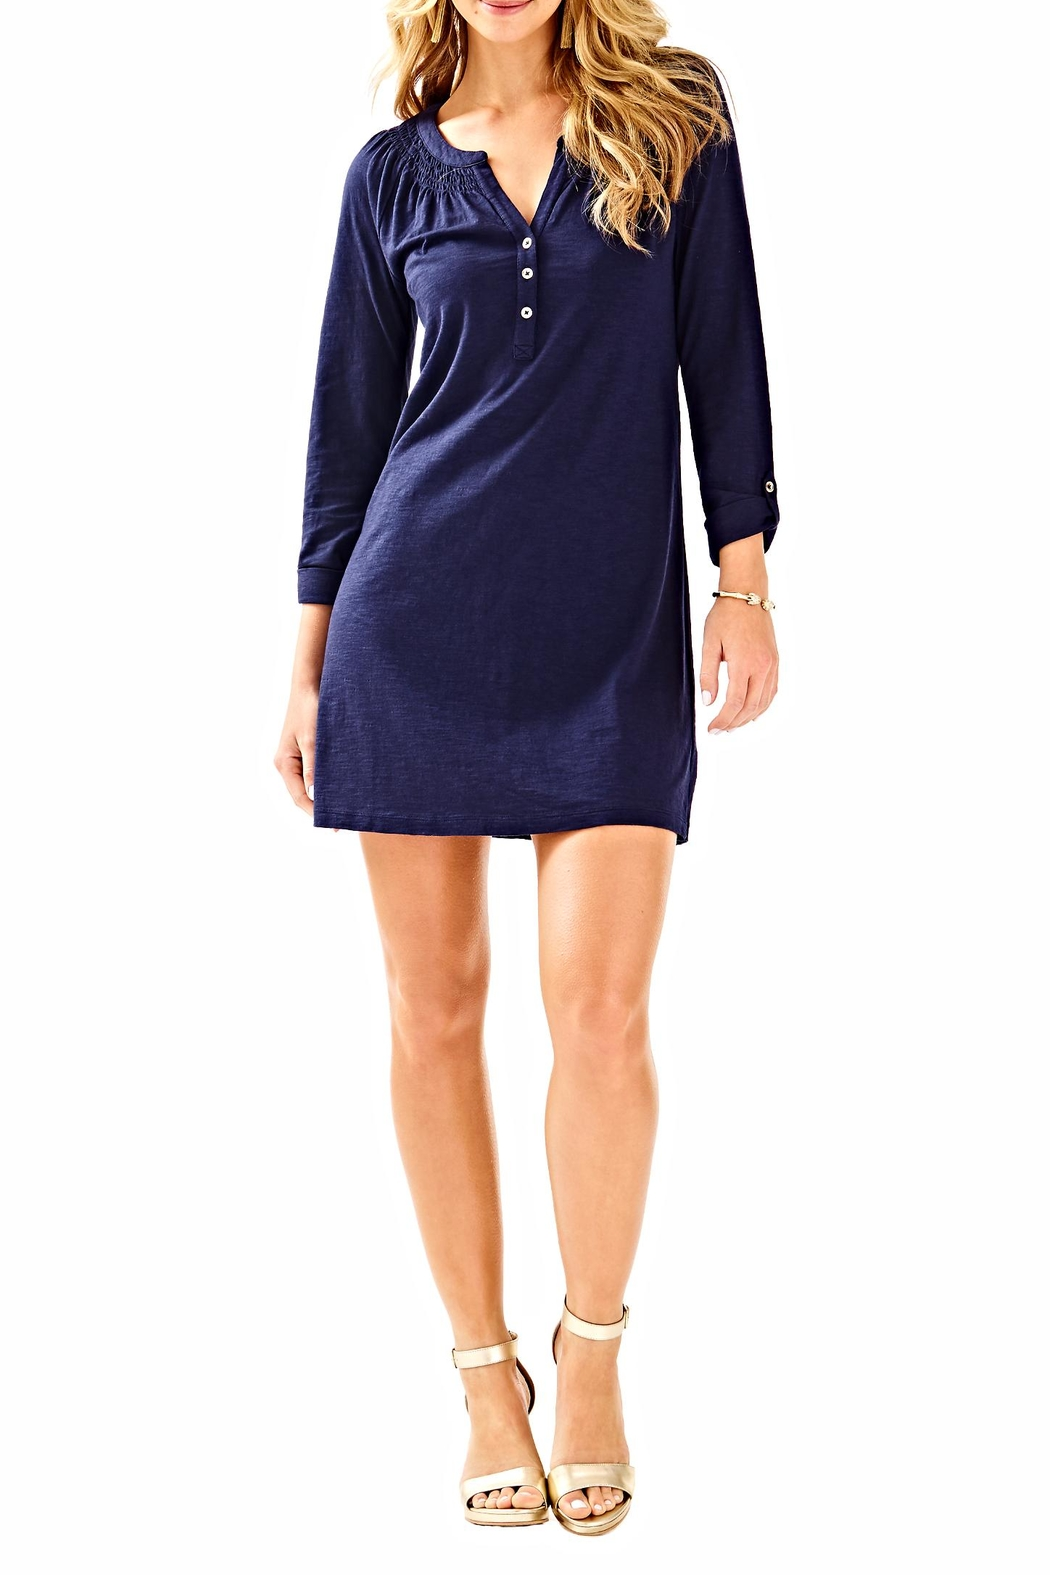 Lilly Pulitzer Sleeved Essie Dress - Main Image